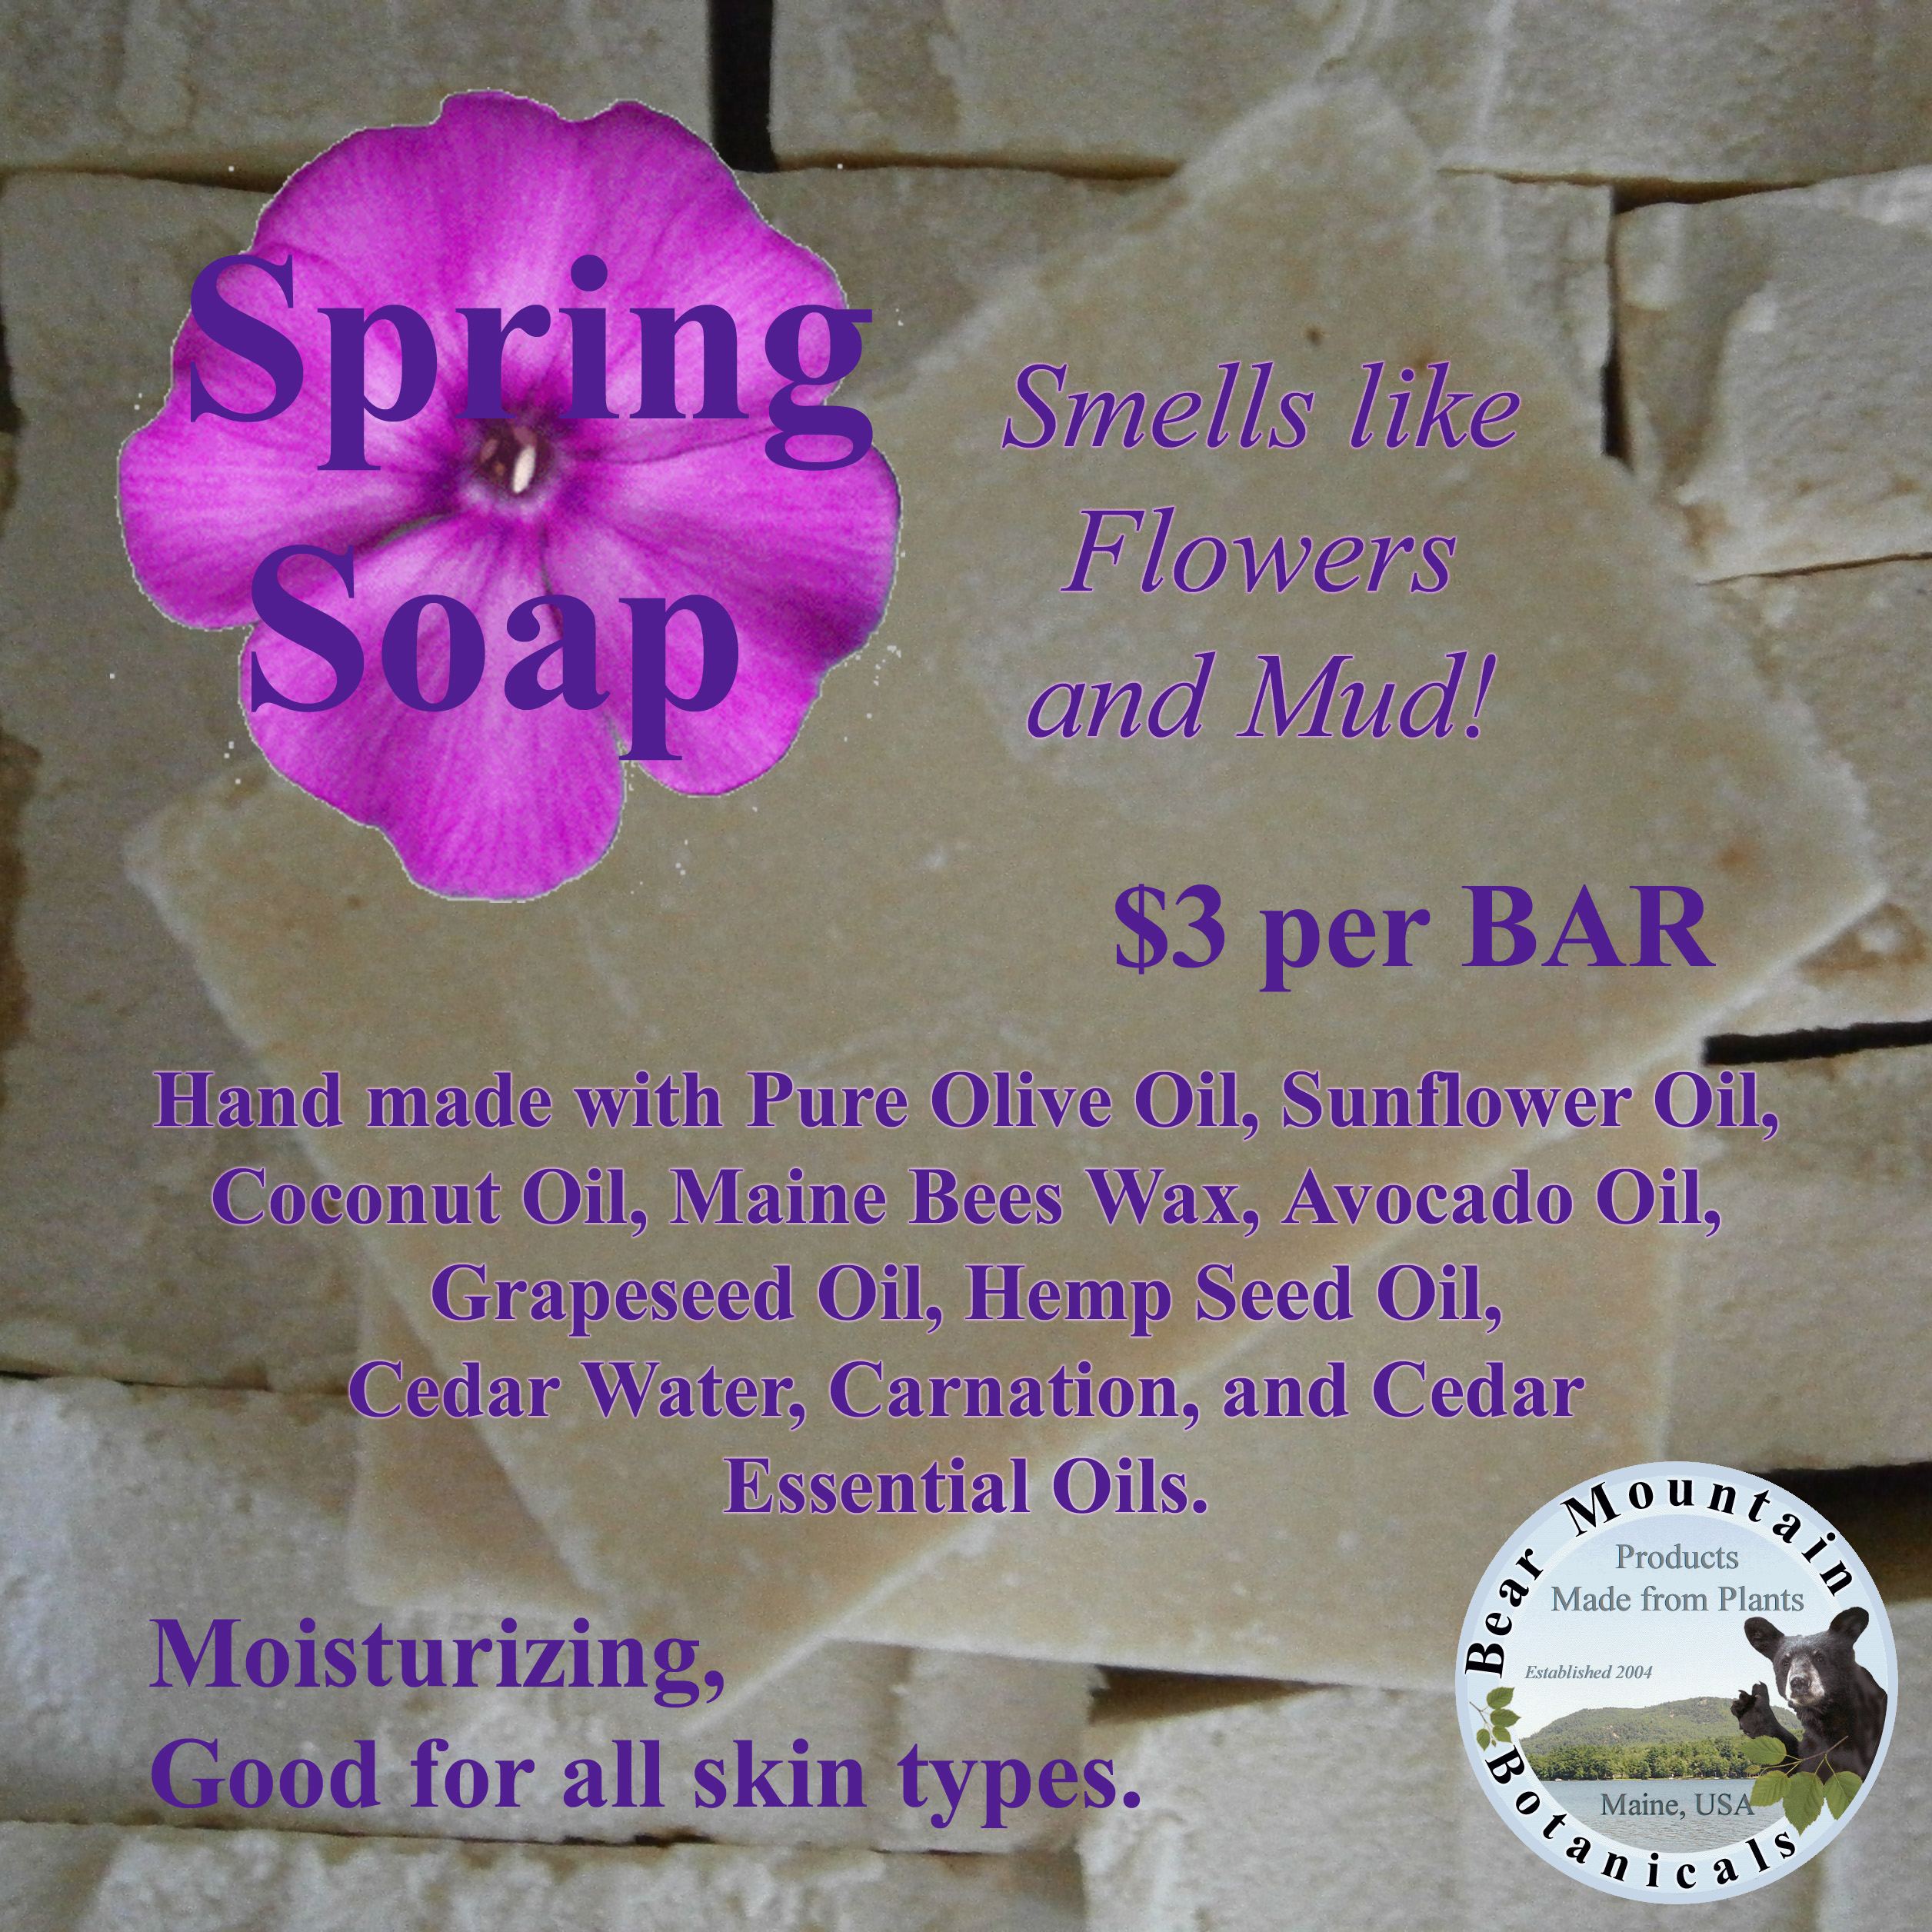 Spring Soap - Bear Mountain Botanicals